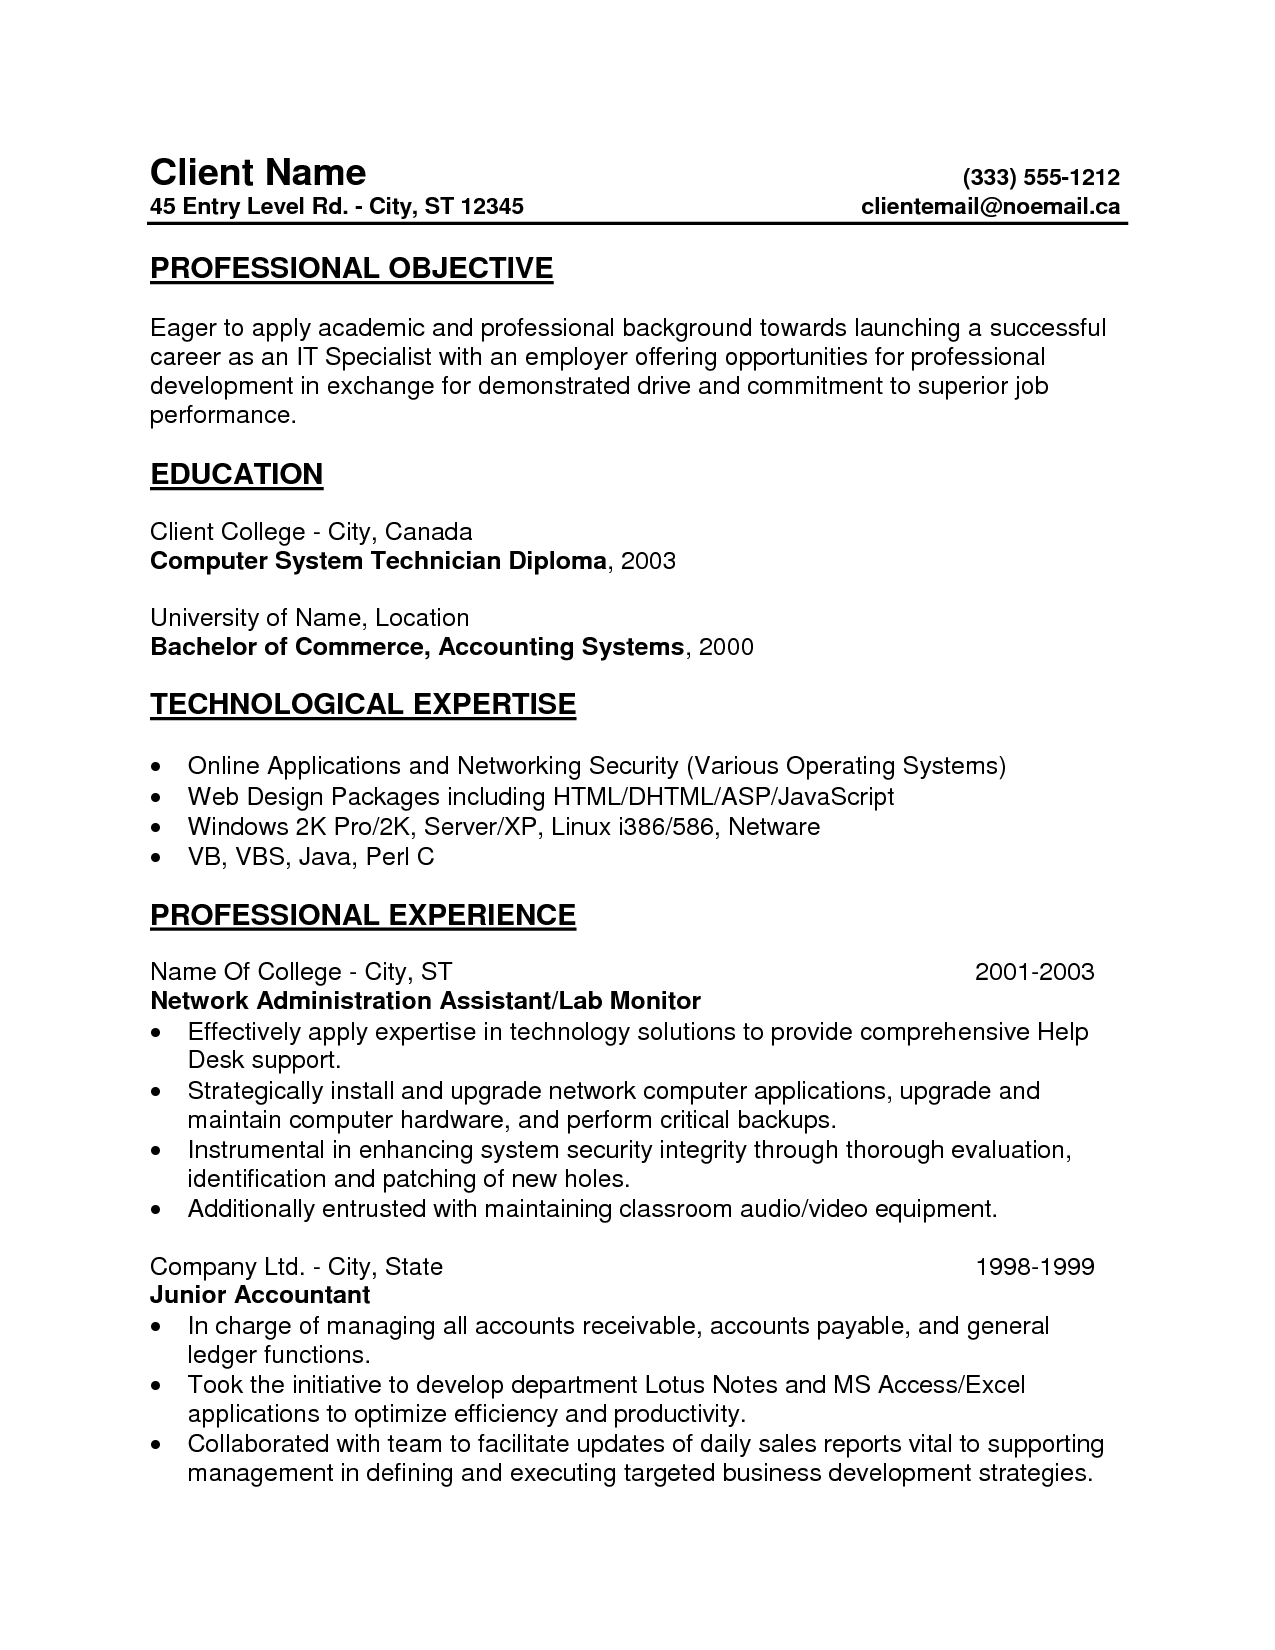 Resume Profile Examples Entry Level Under Fontanacountryinn Com